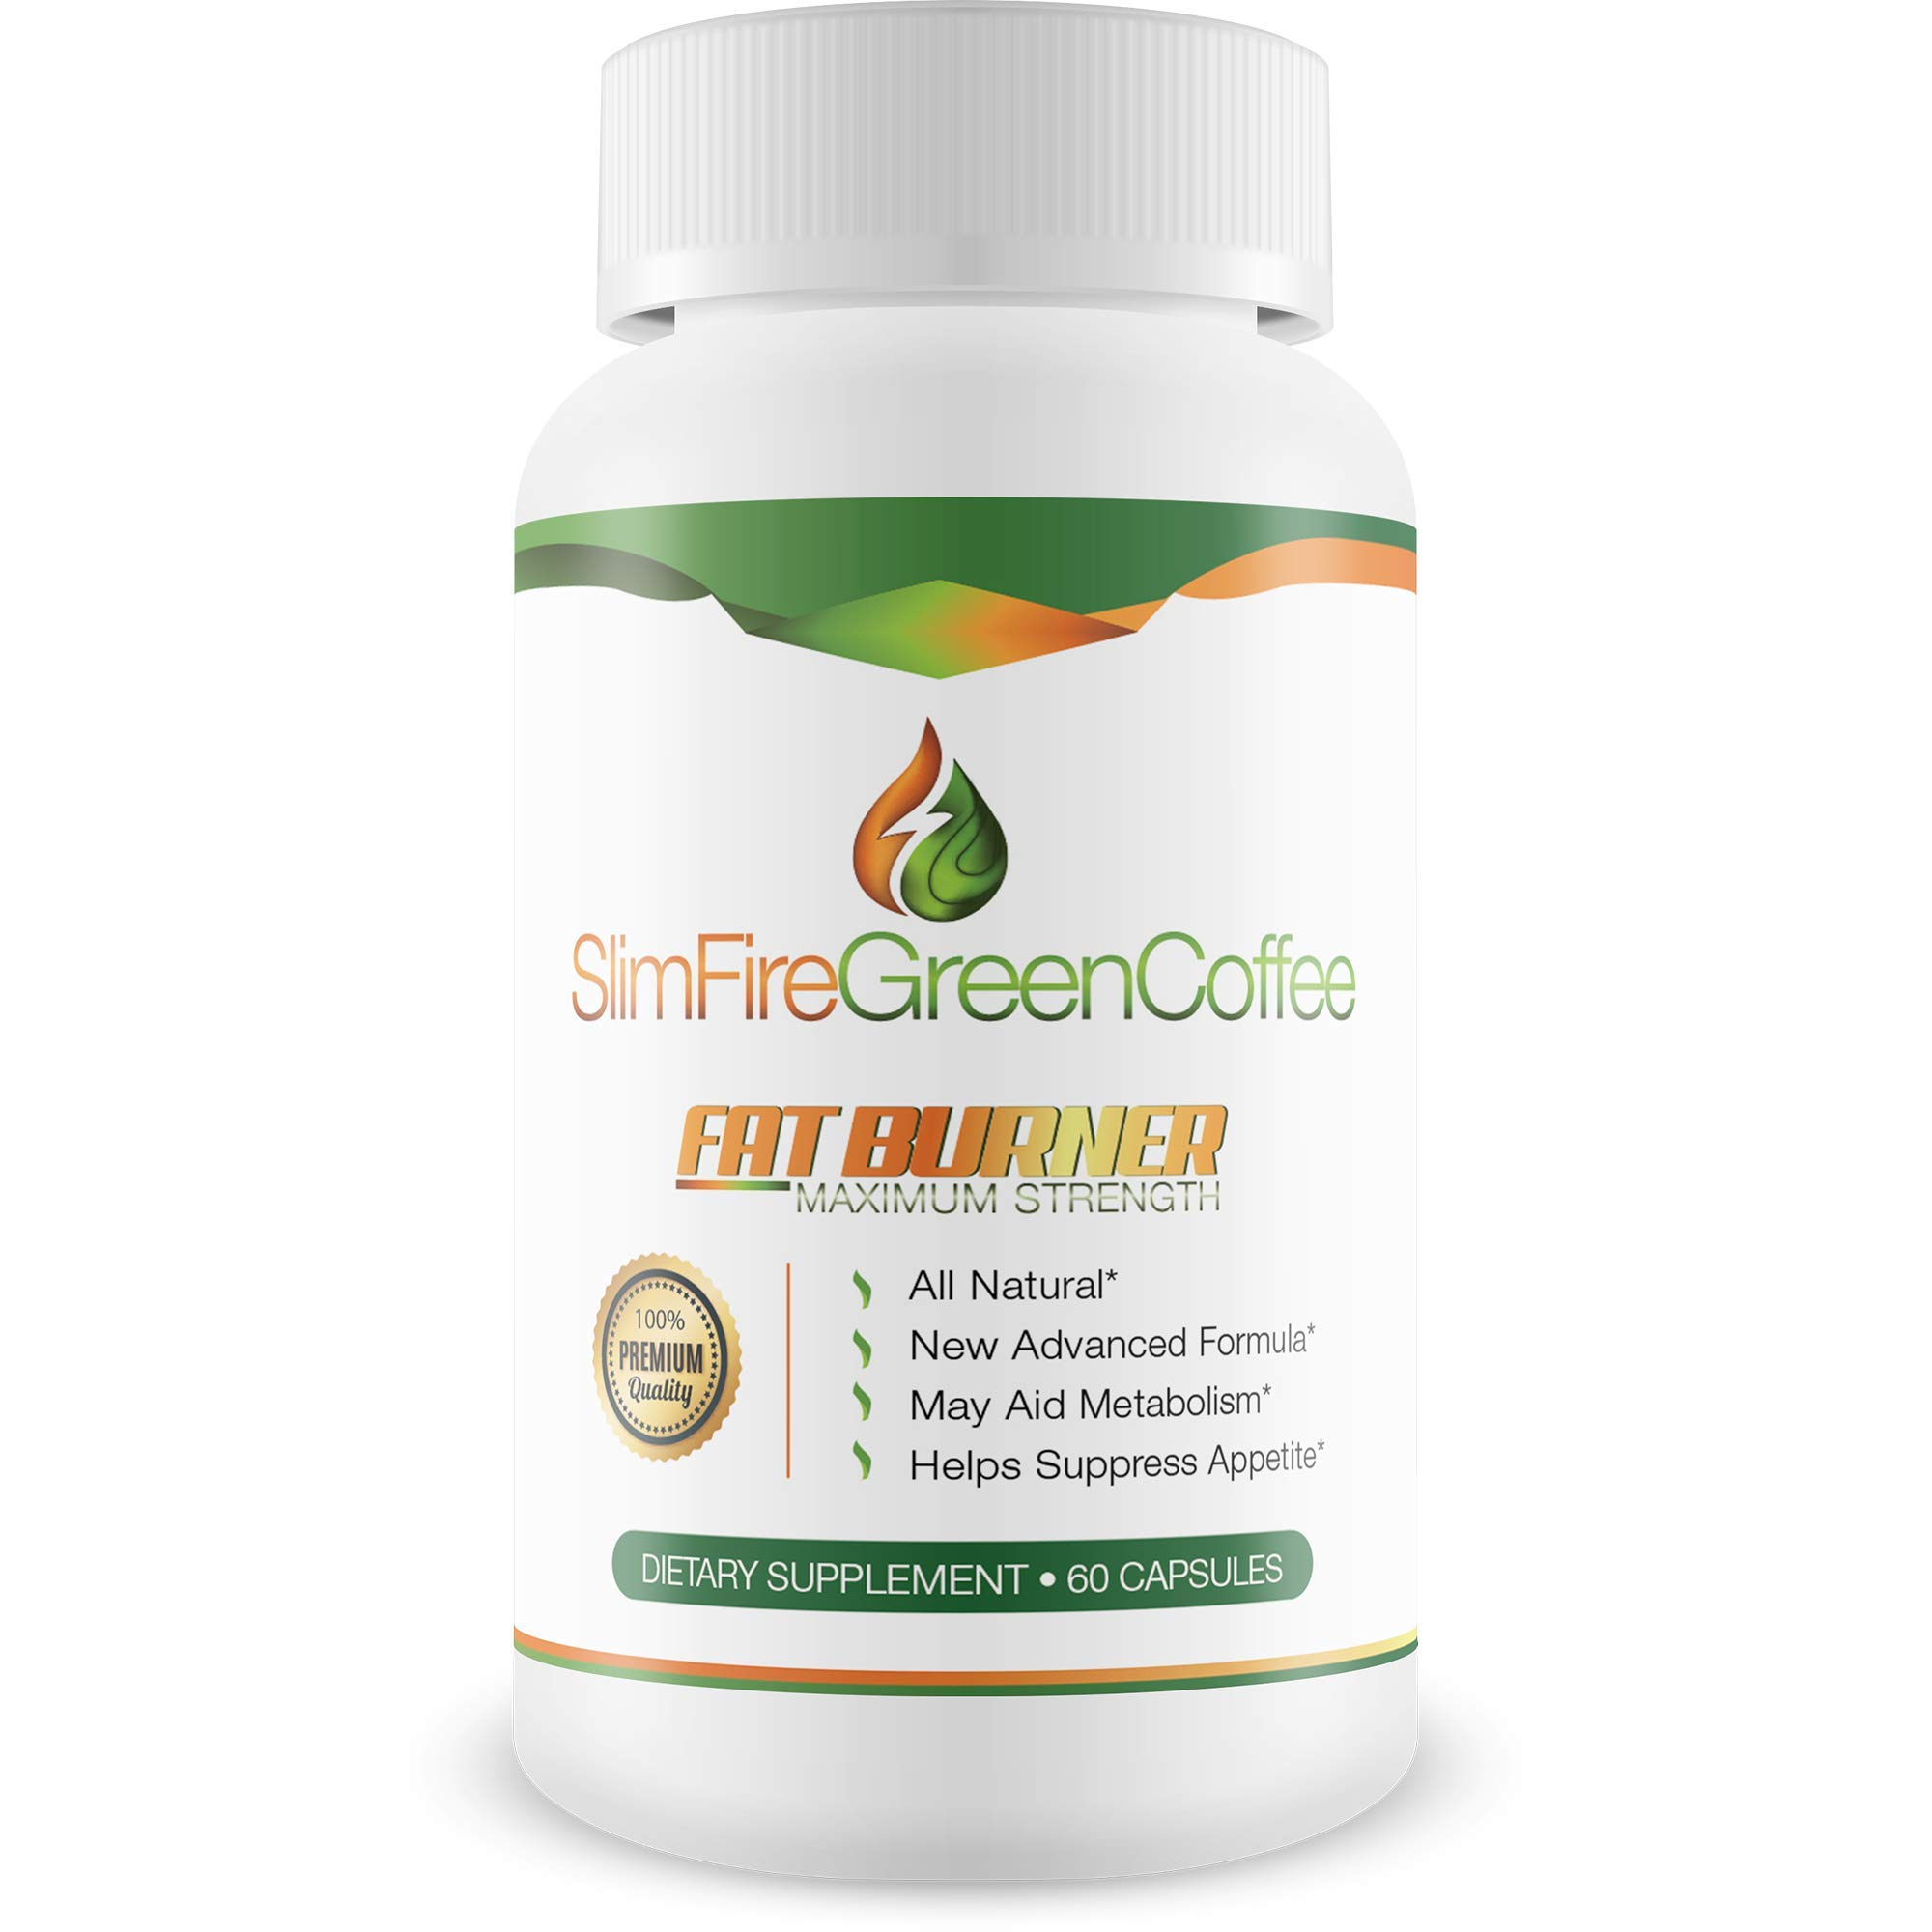 Slim Fire Green Coffee- Green Coffee- Ultra Premium Weight Management Formula-Natural And Potent Weight Loss Pills For Men And Women - Burn Belly Fat - Metabolism Booster - Powerful Antioxidant